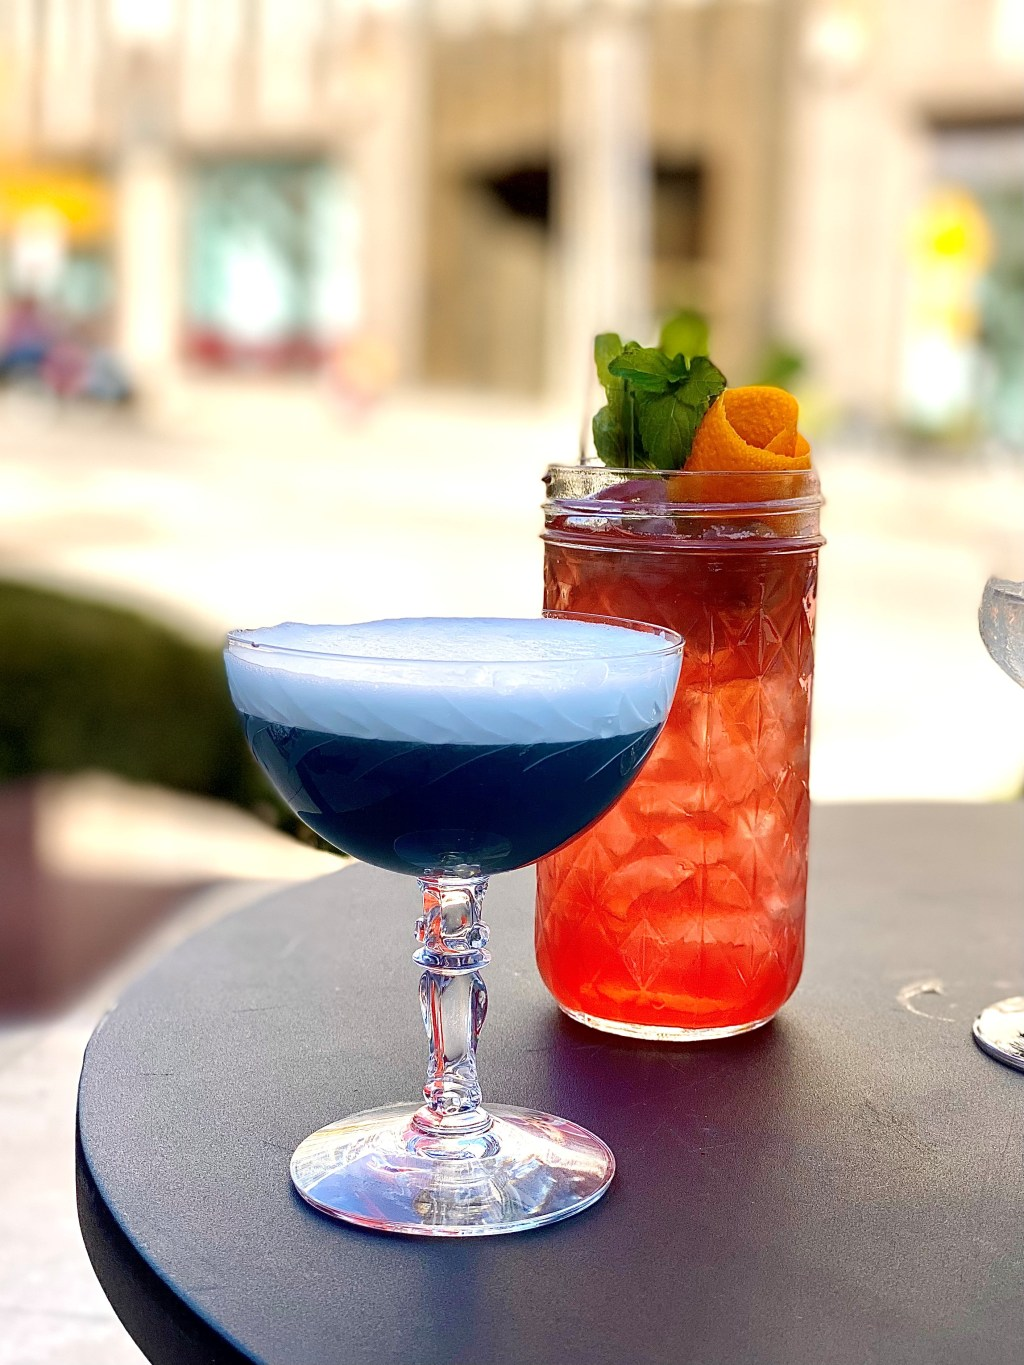 Chicago helps ease the pain with Bipartisan Drink Recipes For Election Day